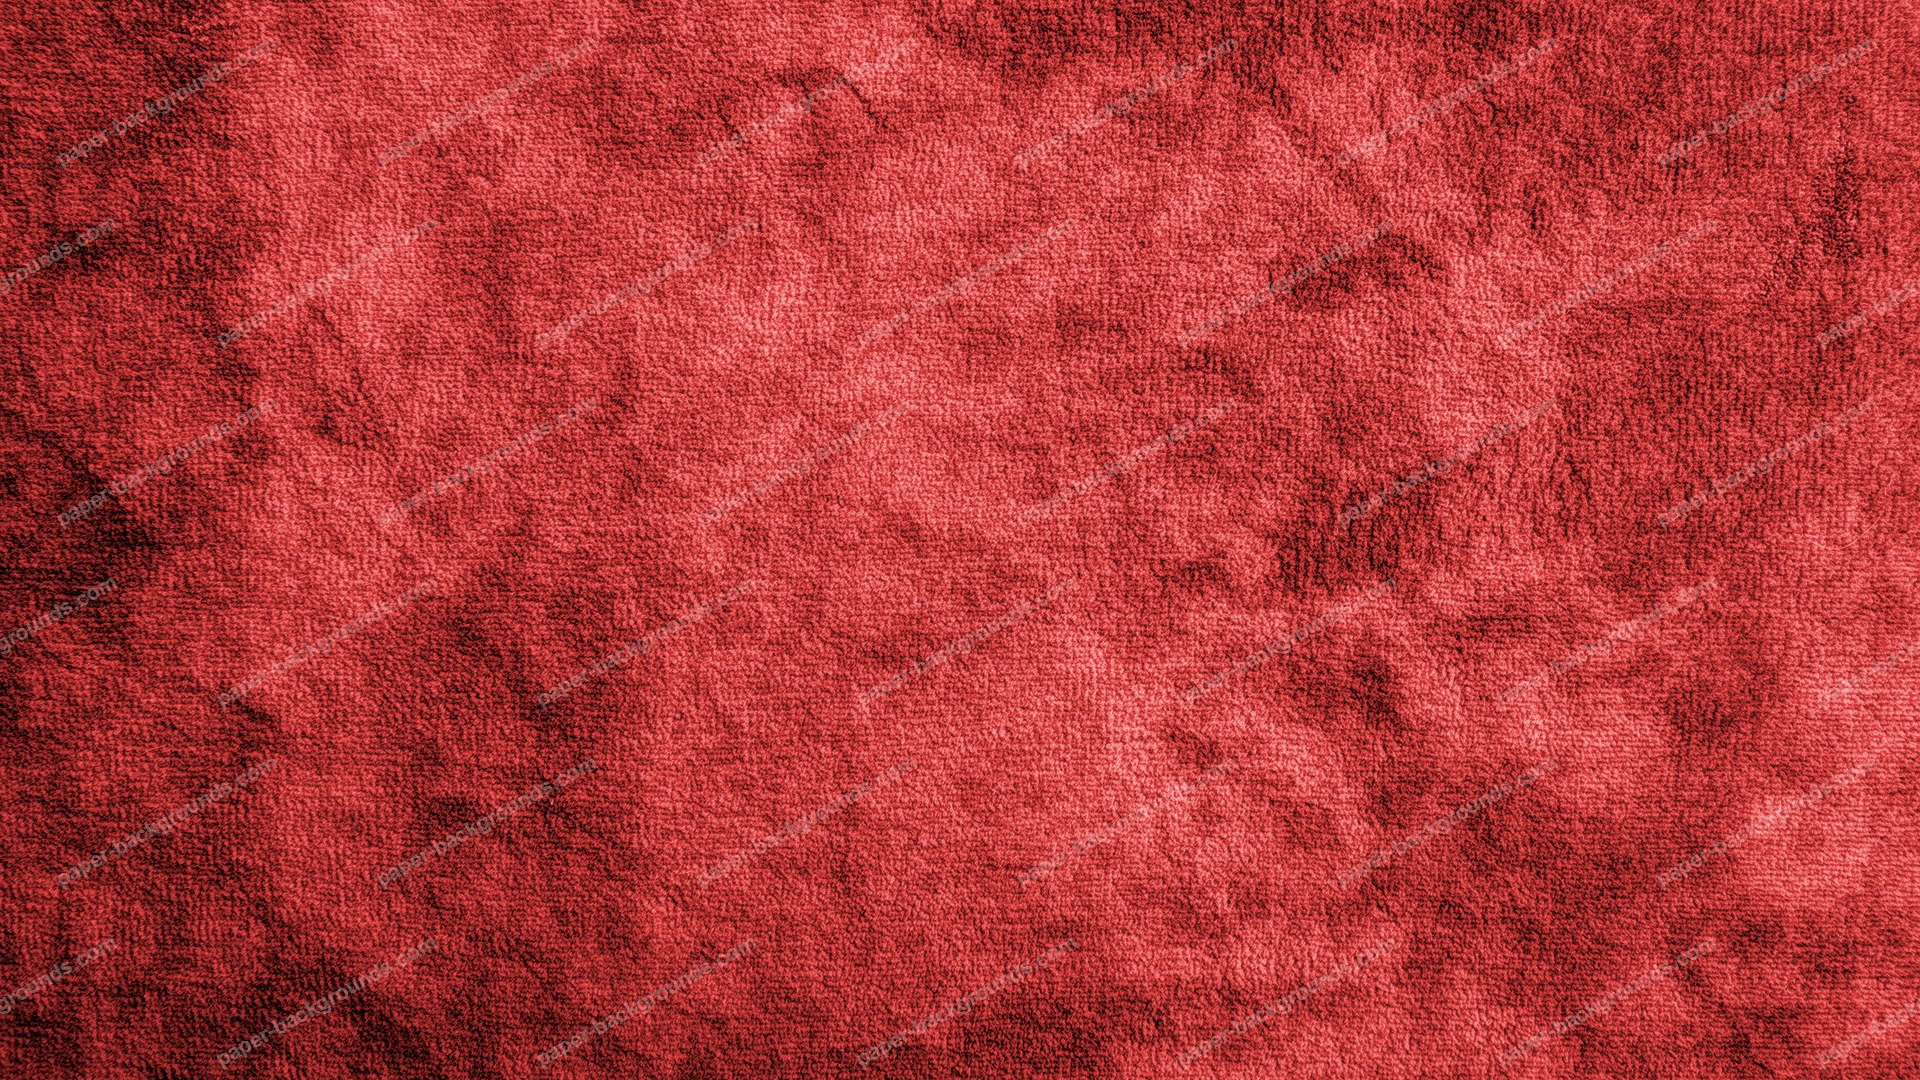 Red Shiny Carpet Texture HD 1920 x 1080p